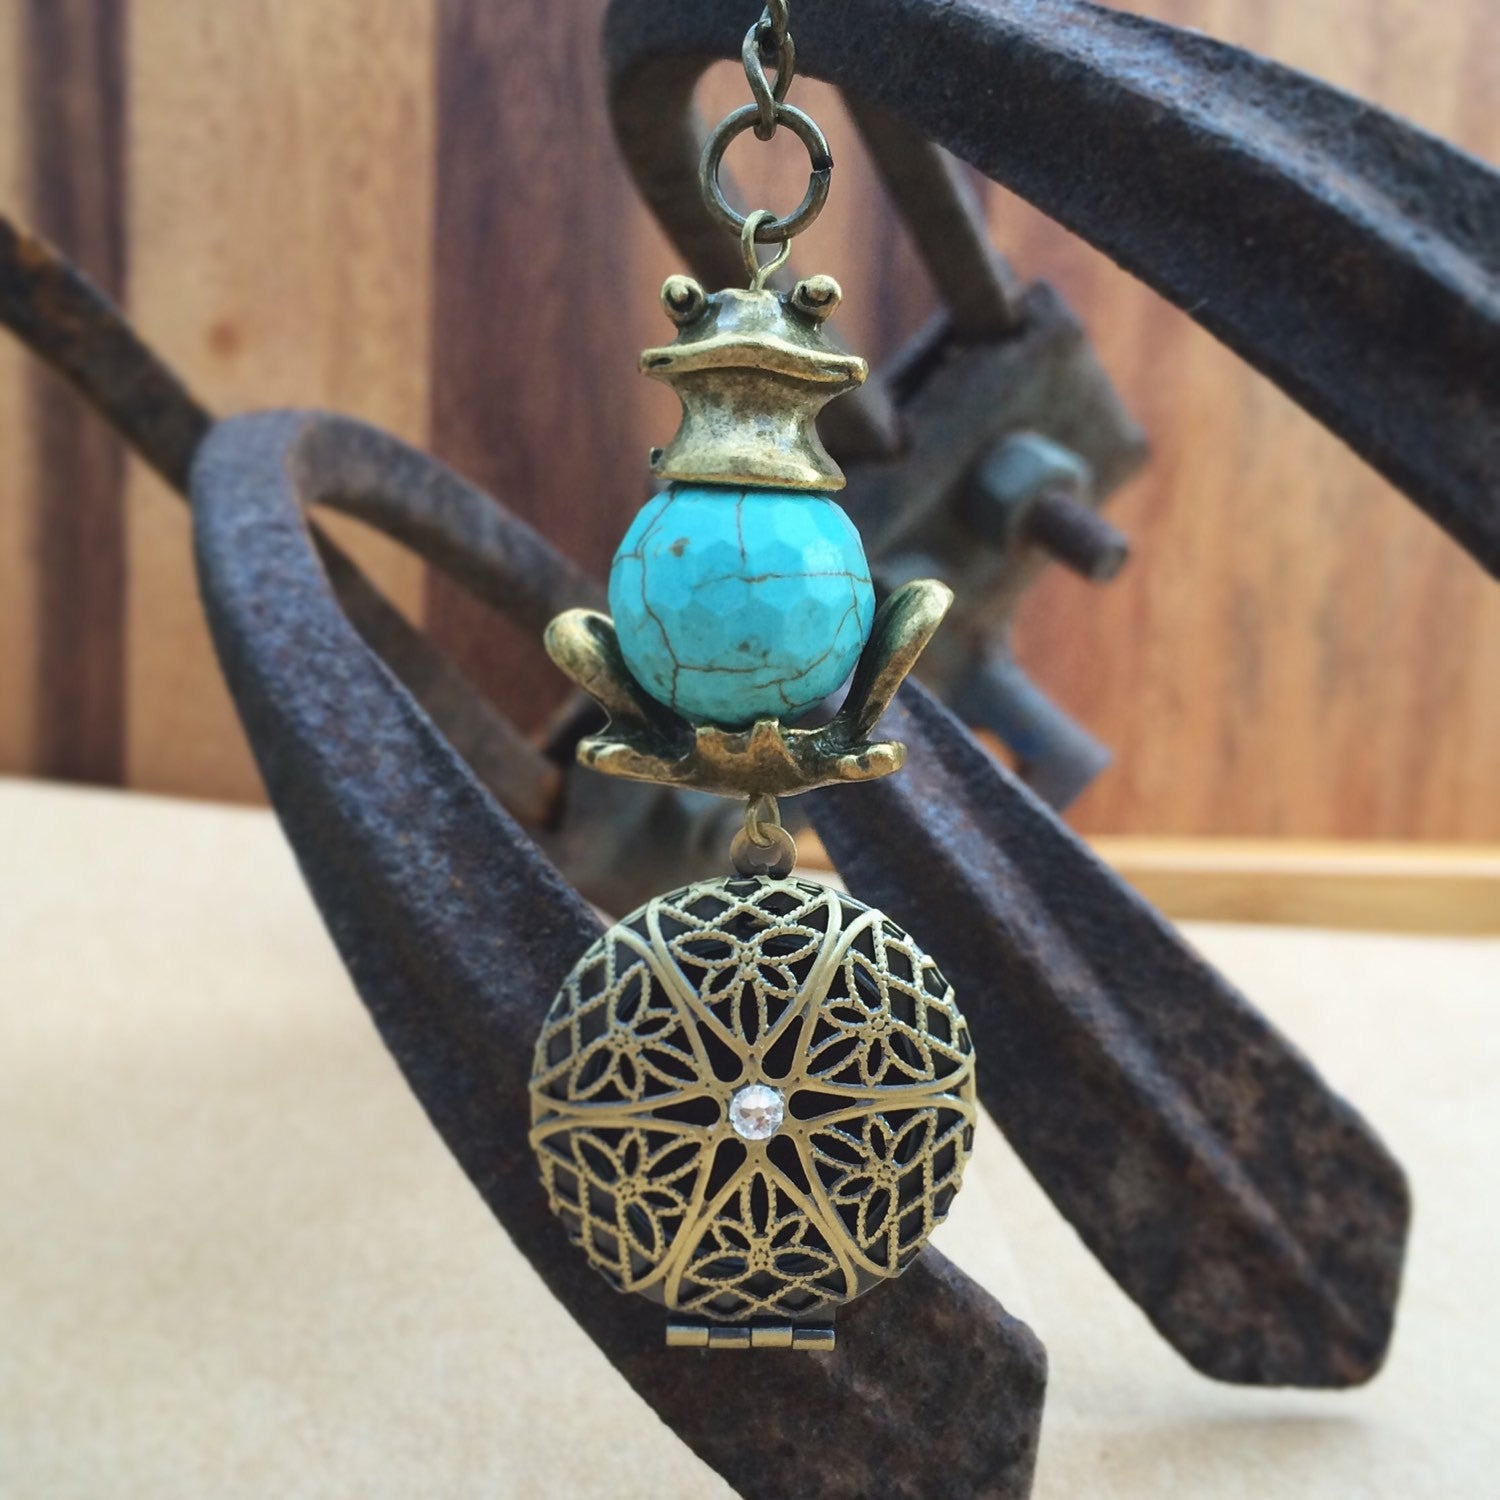 Turquoise Antique Brass Tone Froggy Frog Essential Oil Diffuser Locket Keychain Keyring with Swarovski Crystal Eclectic